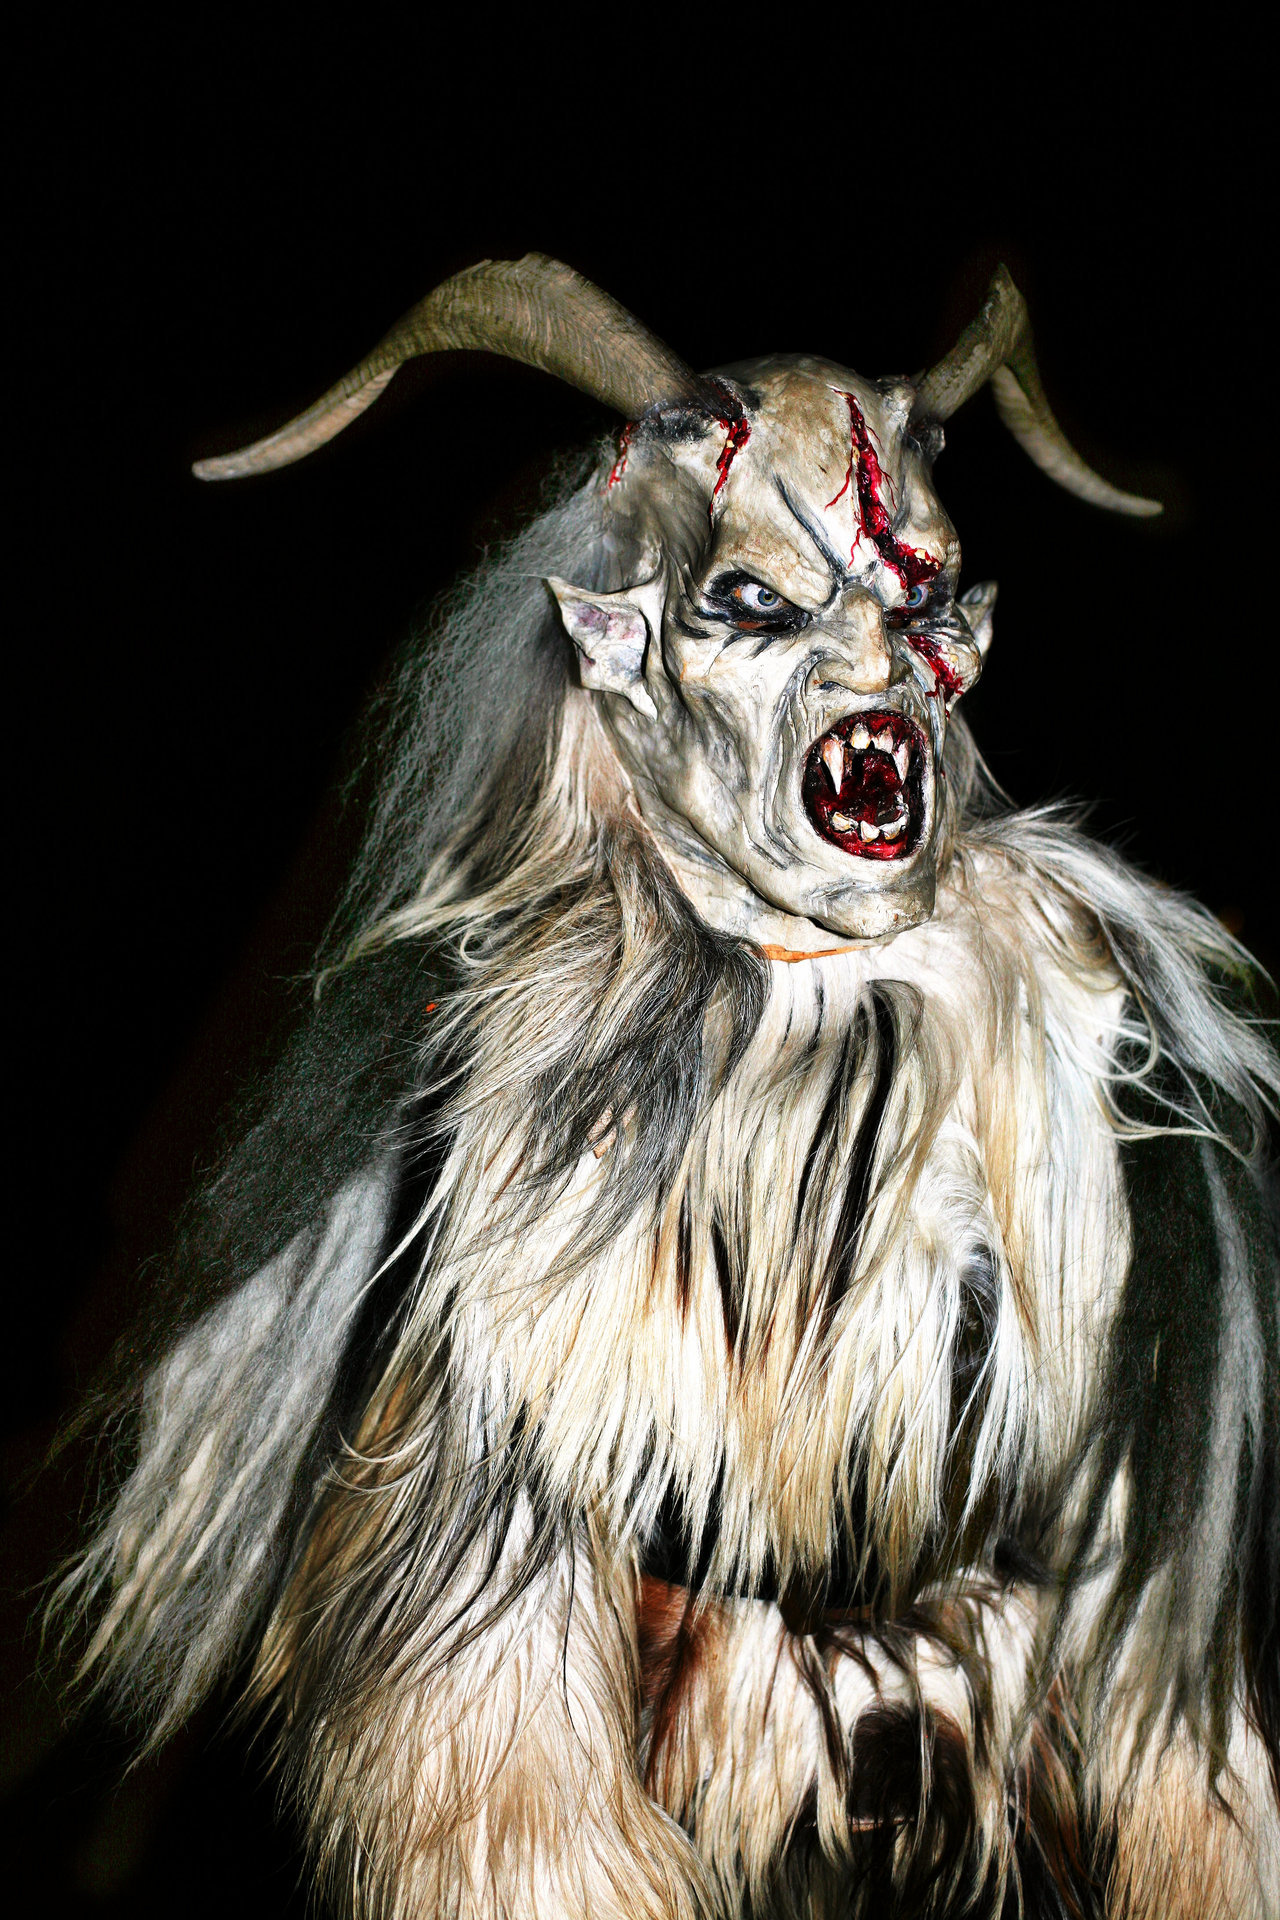 REMINDER: Less than a month till Krampusnacht. Time to dust off those chains and switches!